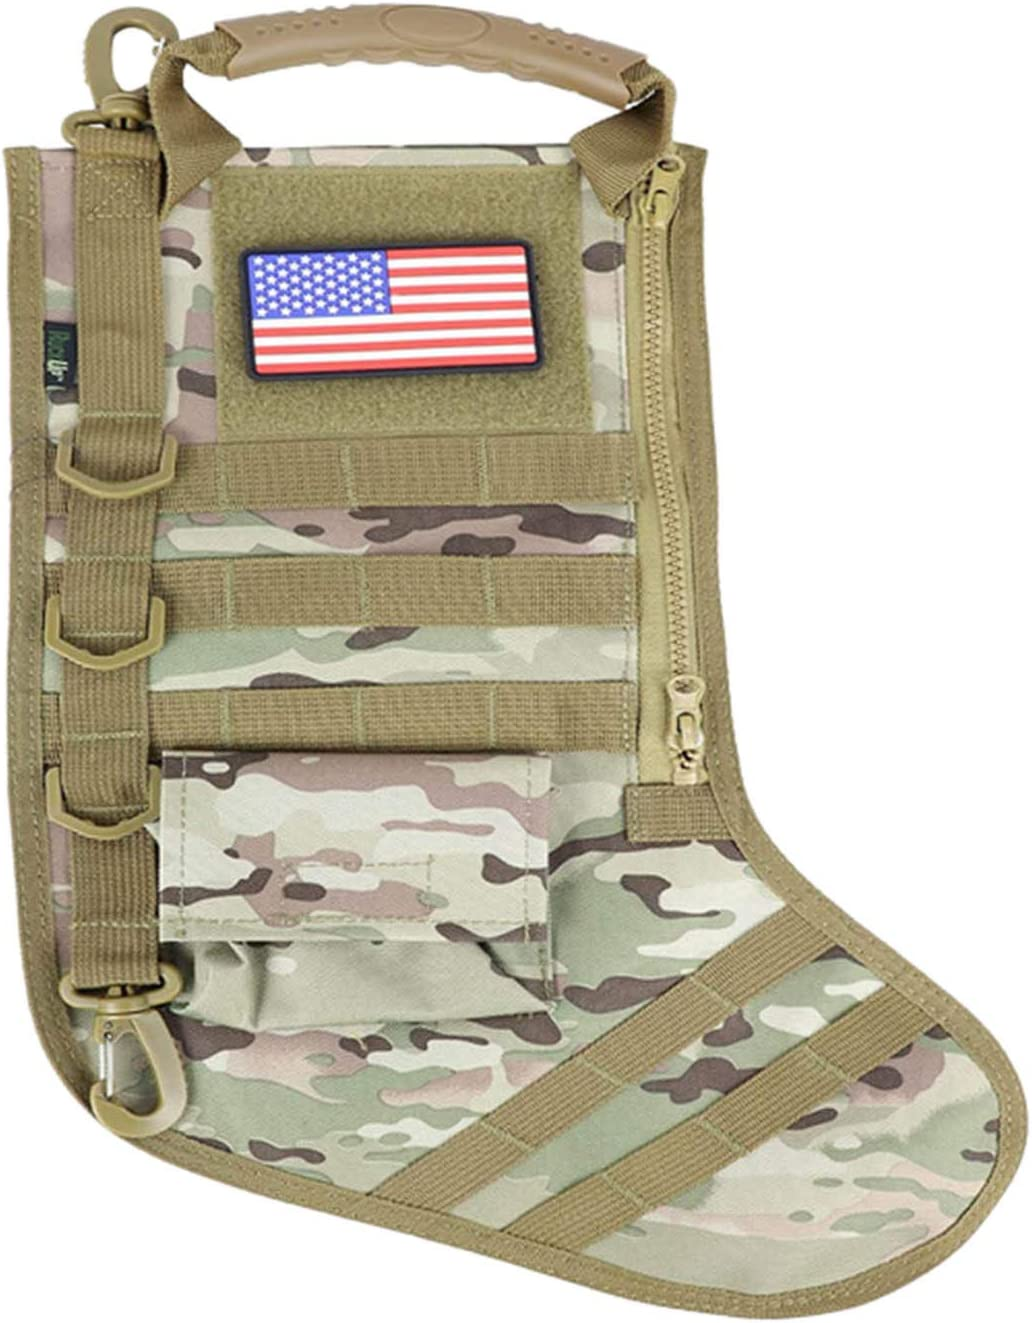 TLoowy-Clearance Tactical Christmas Xmas Stocking W//Handle Gift for Veterans Military Patriotic and Outdoorsy People Perfect Mantel Decoration